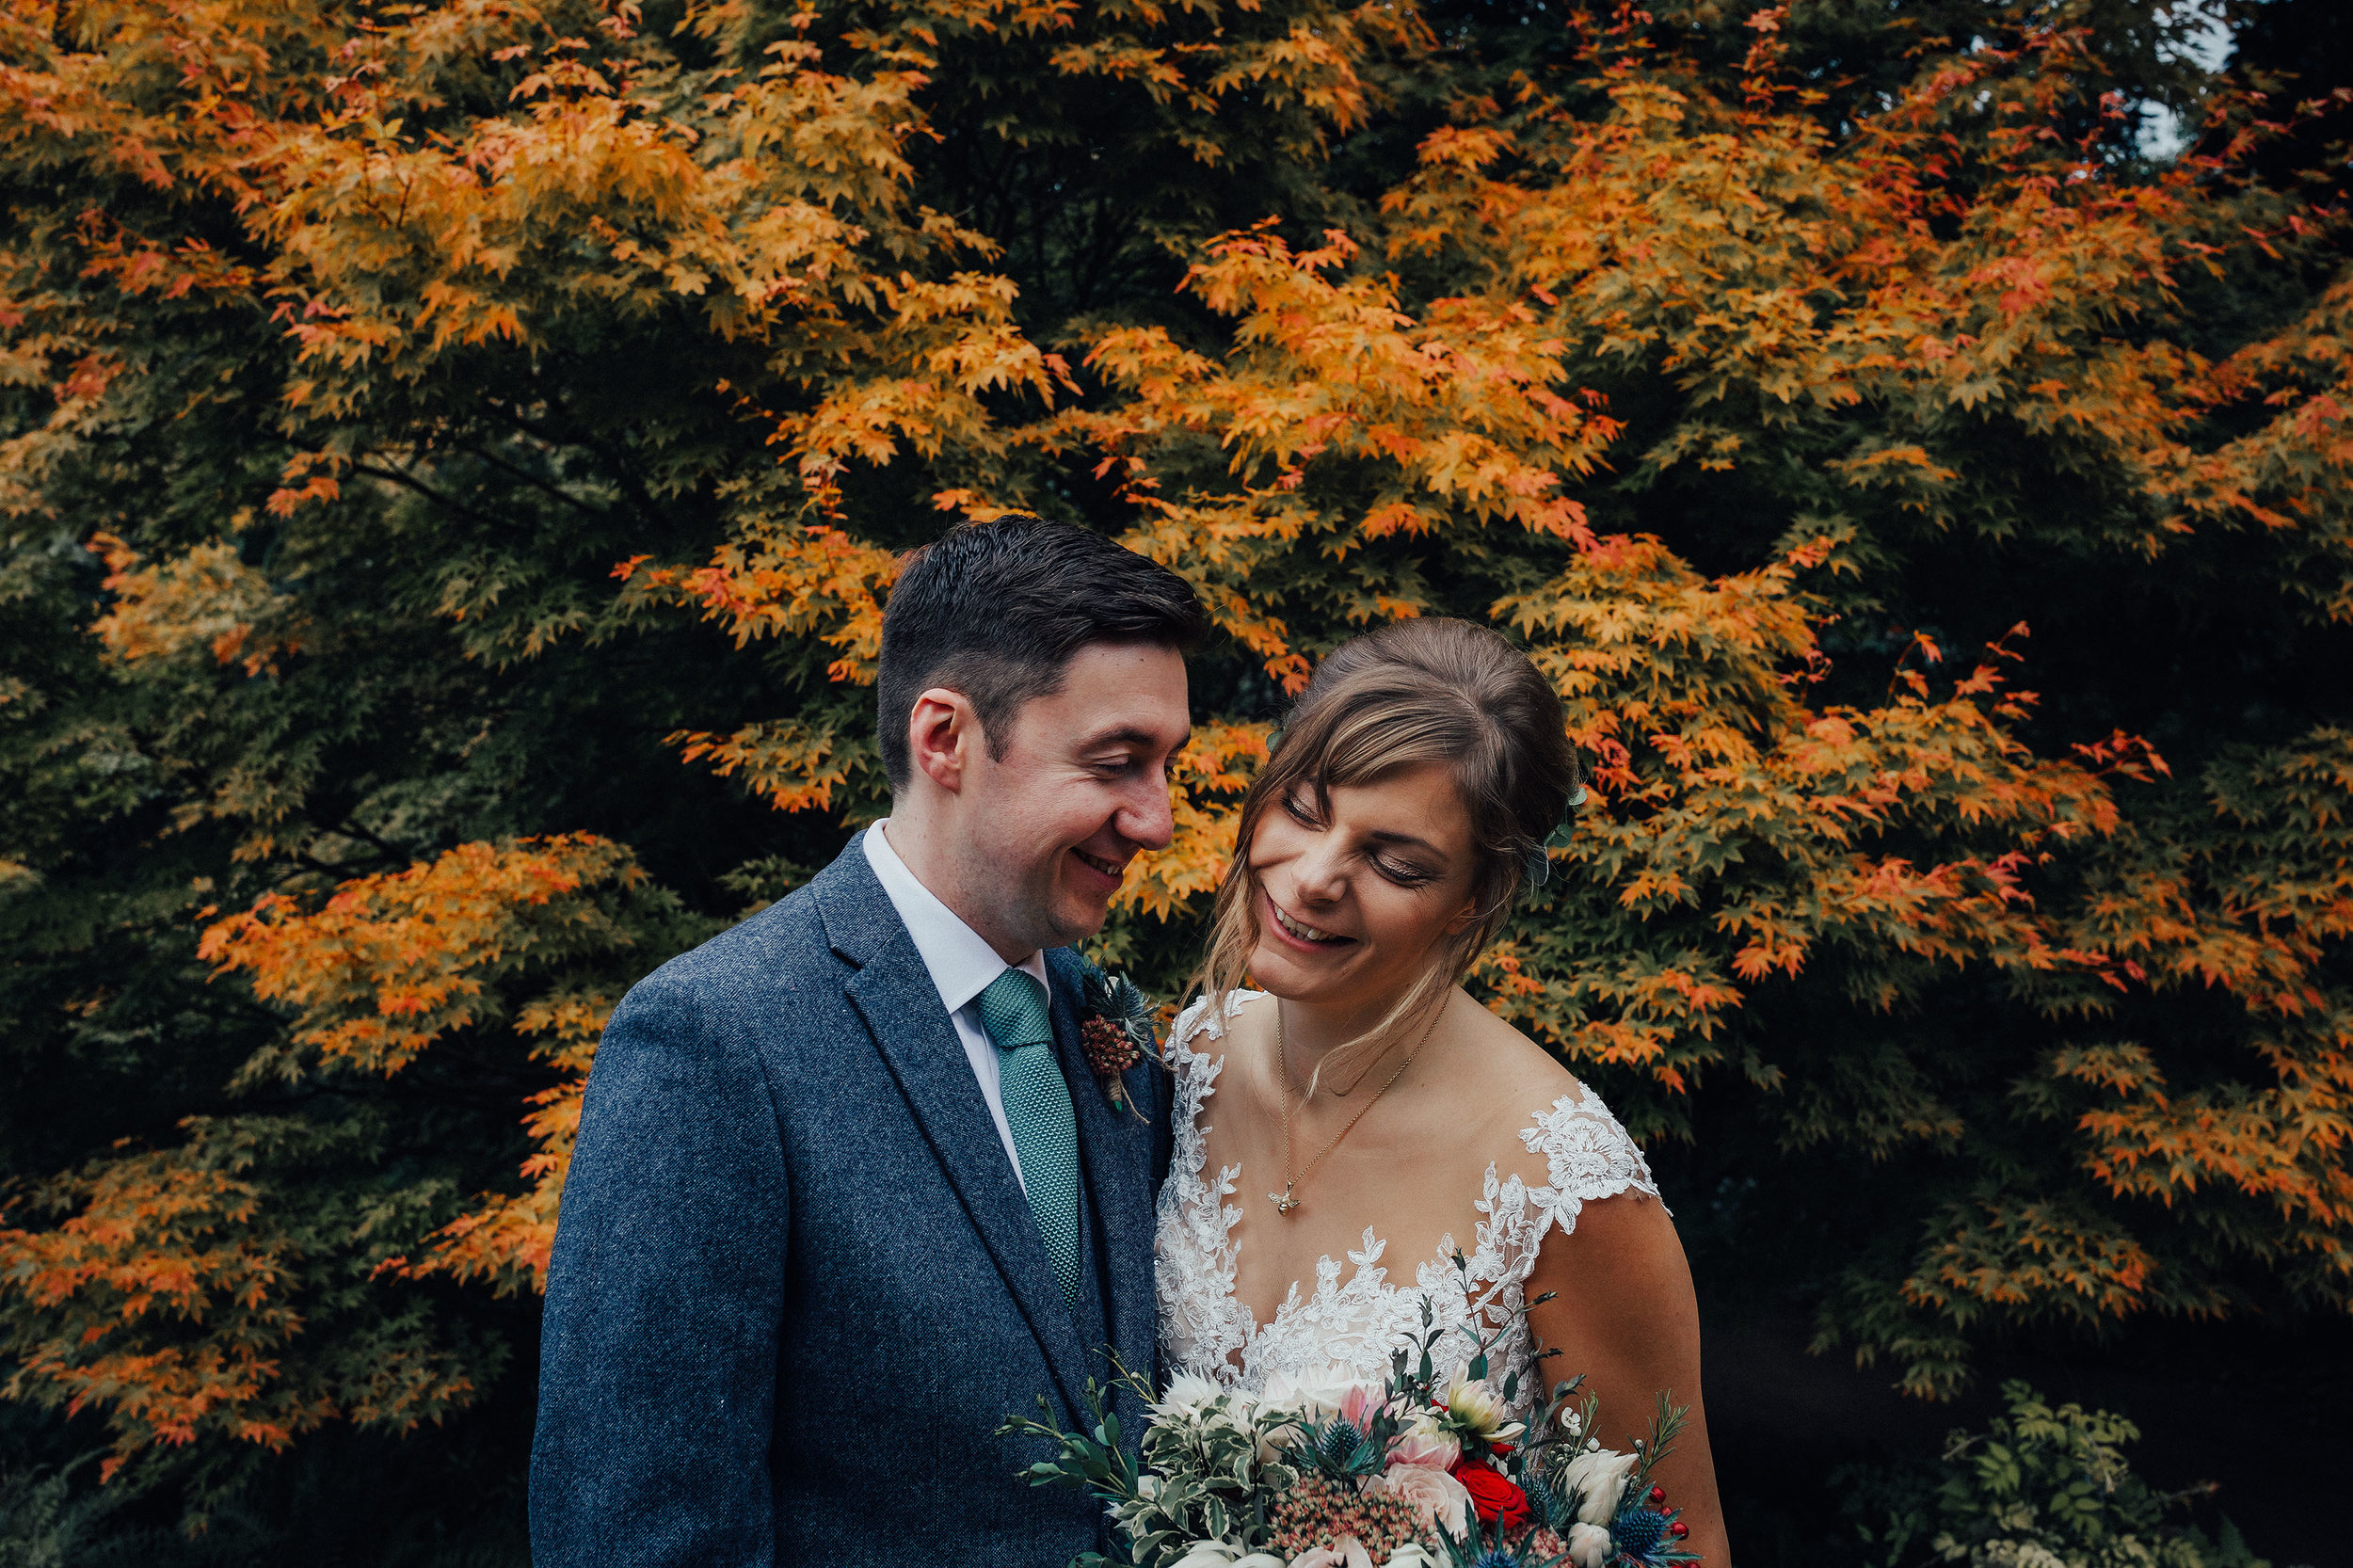 PJ_PHILLIPS_PHOTOGRAPHY_2018_SCOTLAND_WEDDING_PHOTOOGRAPHER_106.jpg